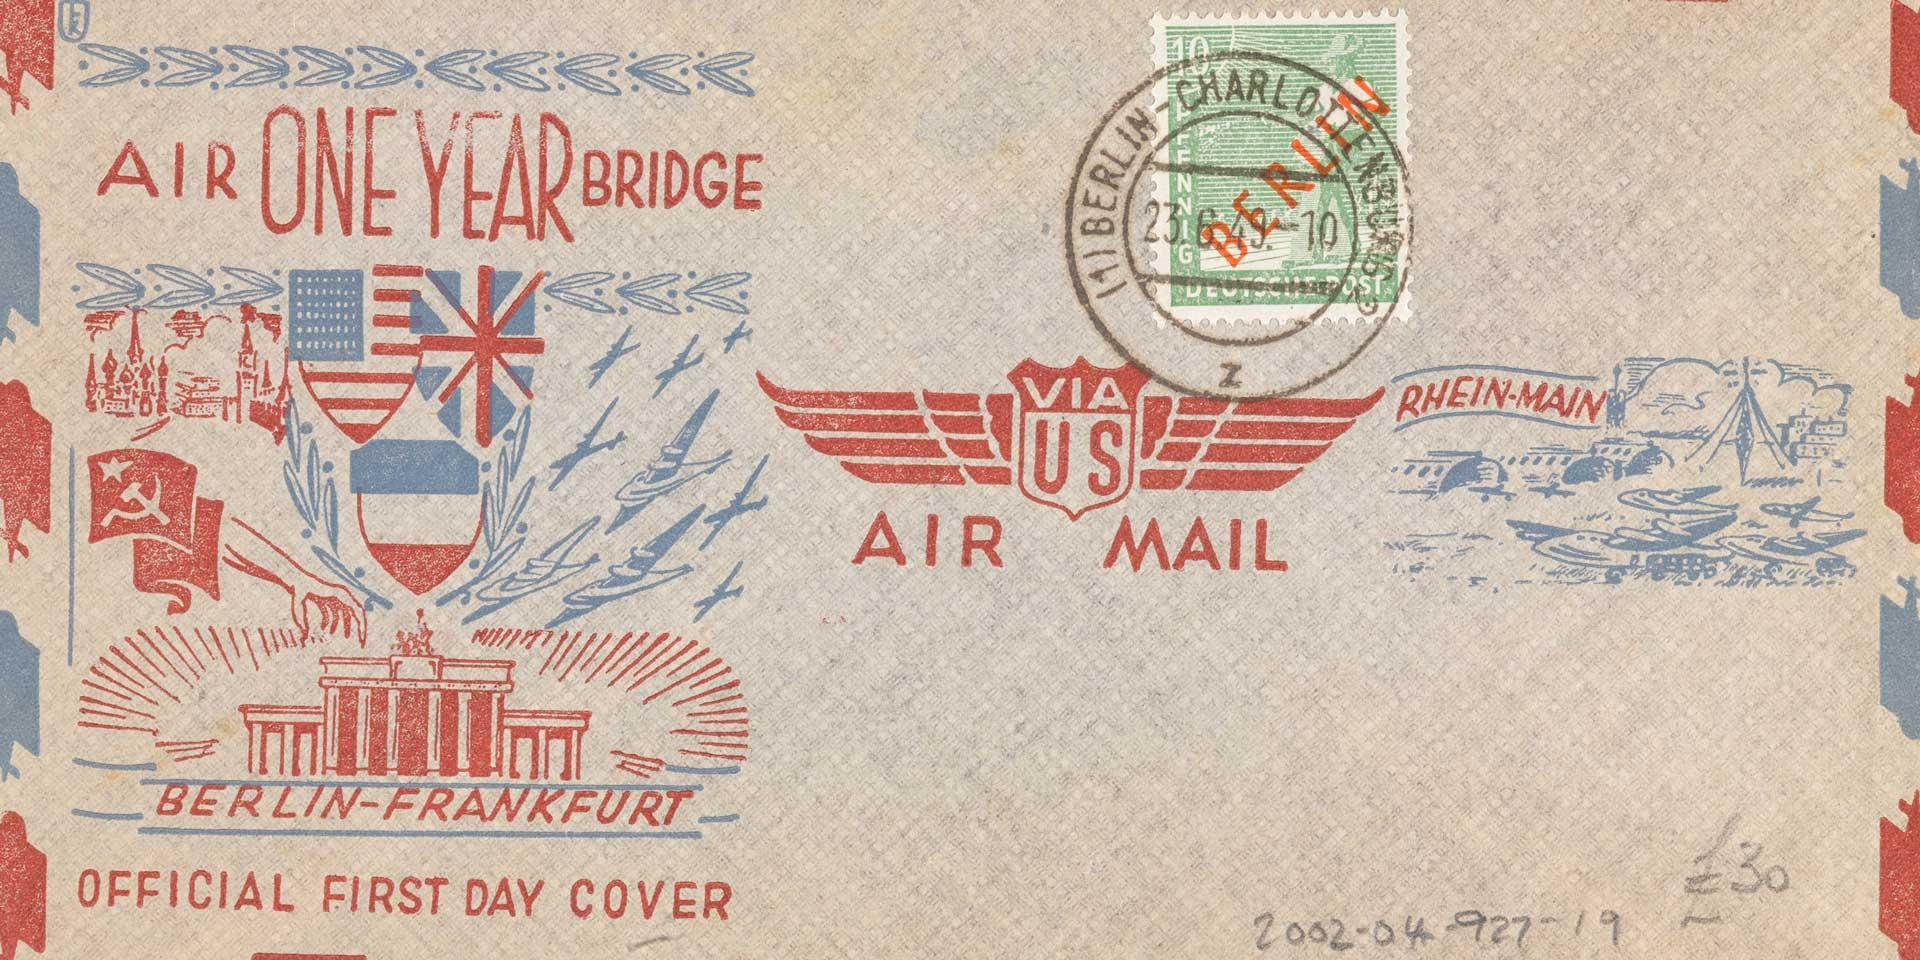 US Air Mail envelope marking the first anniversary of the Berlin blockade and airlift, 23 June 1949